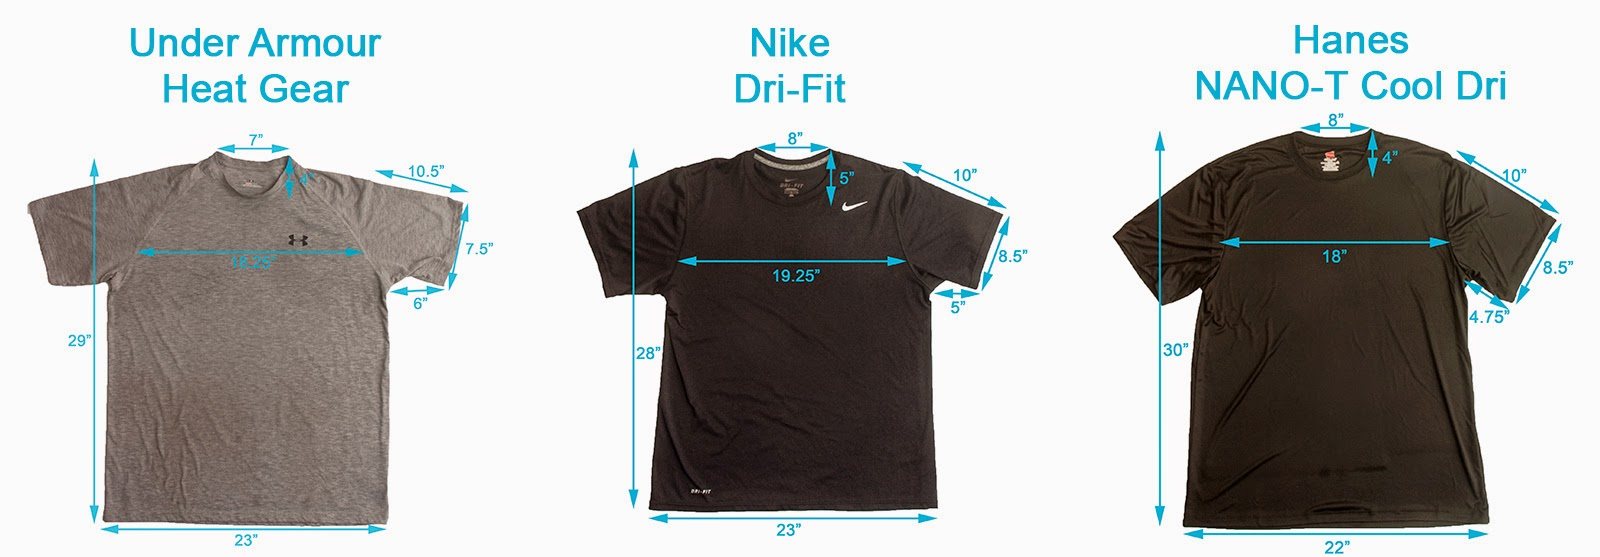 Below you can see some of the key measurements of Under Armour HeatGear,  Nike Legend Dri-Fit and Hanes NANO-T Cool Dri shirts all in size large.